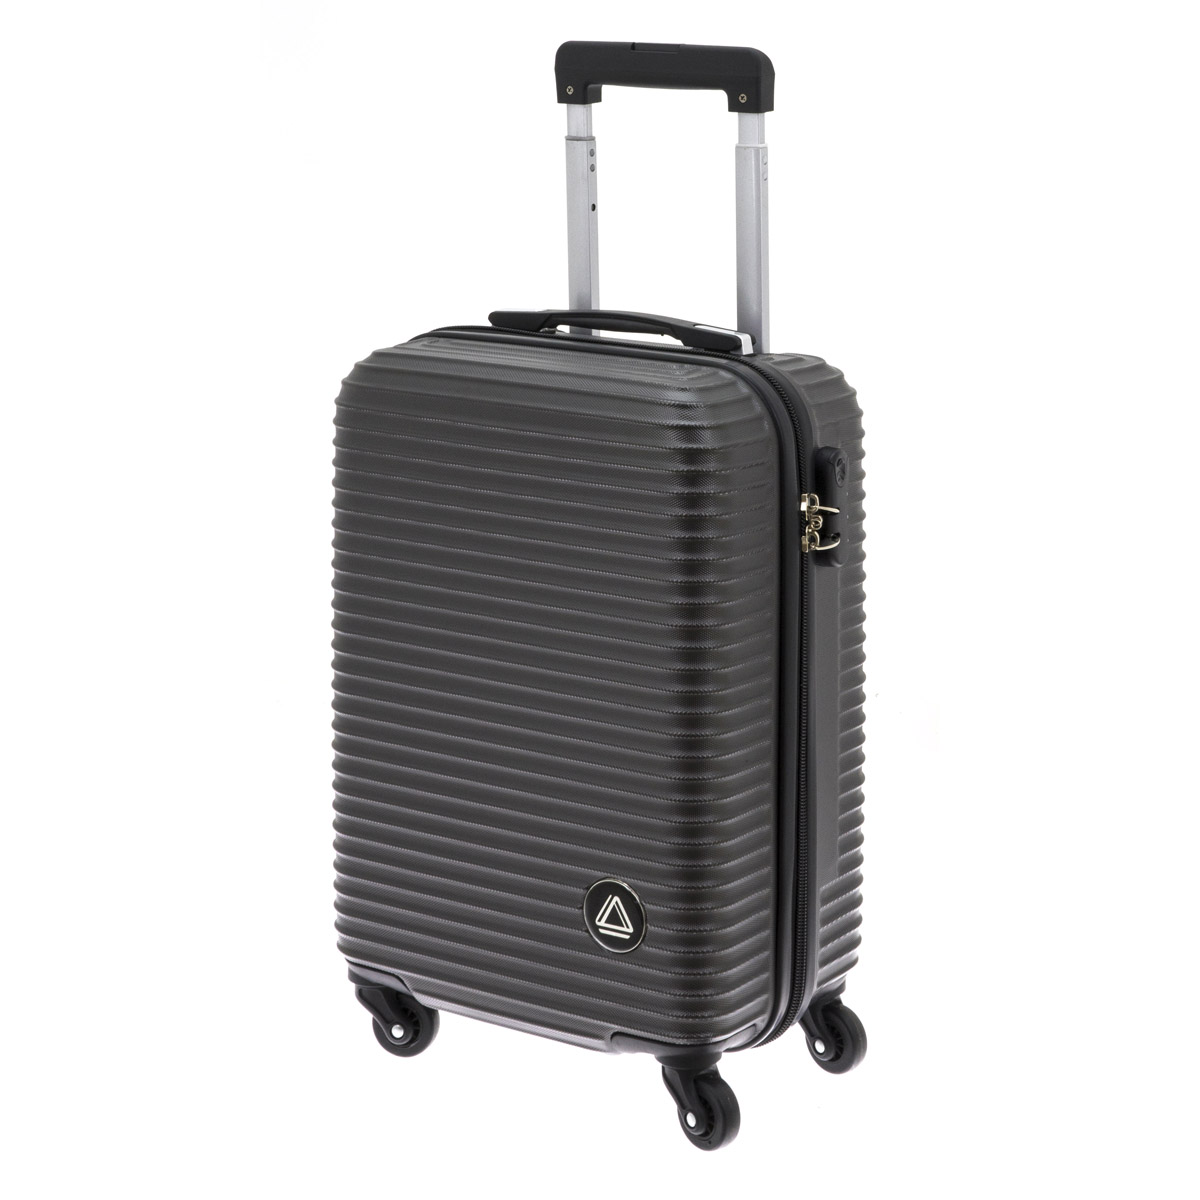 Valise trolley coque ABS \'Davidt\'s\' gris anthracite (format cabine) - 55x38x20 cm - [Q9936]